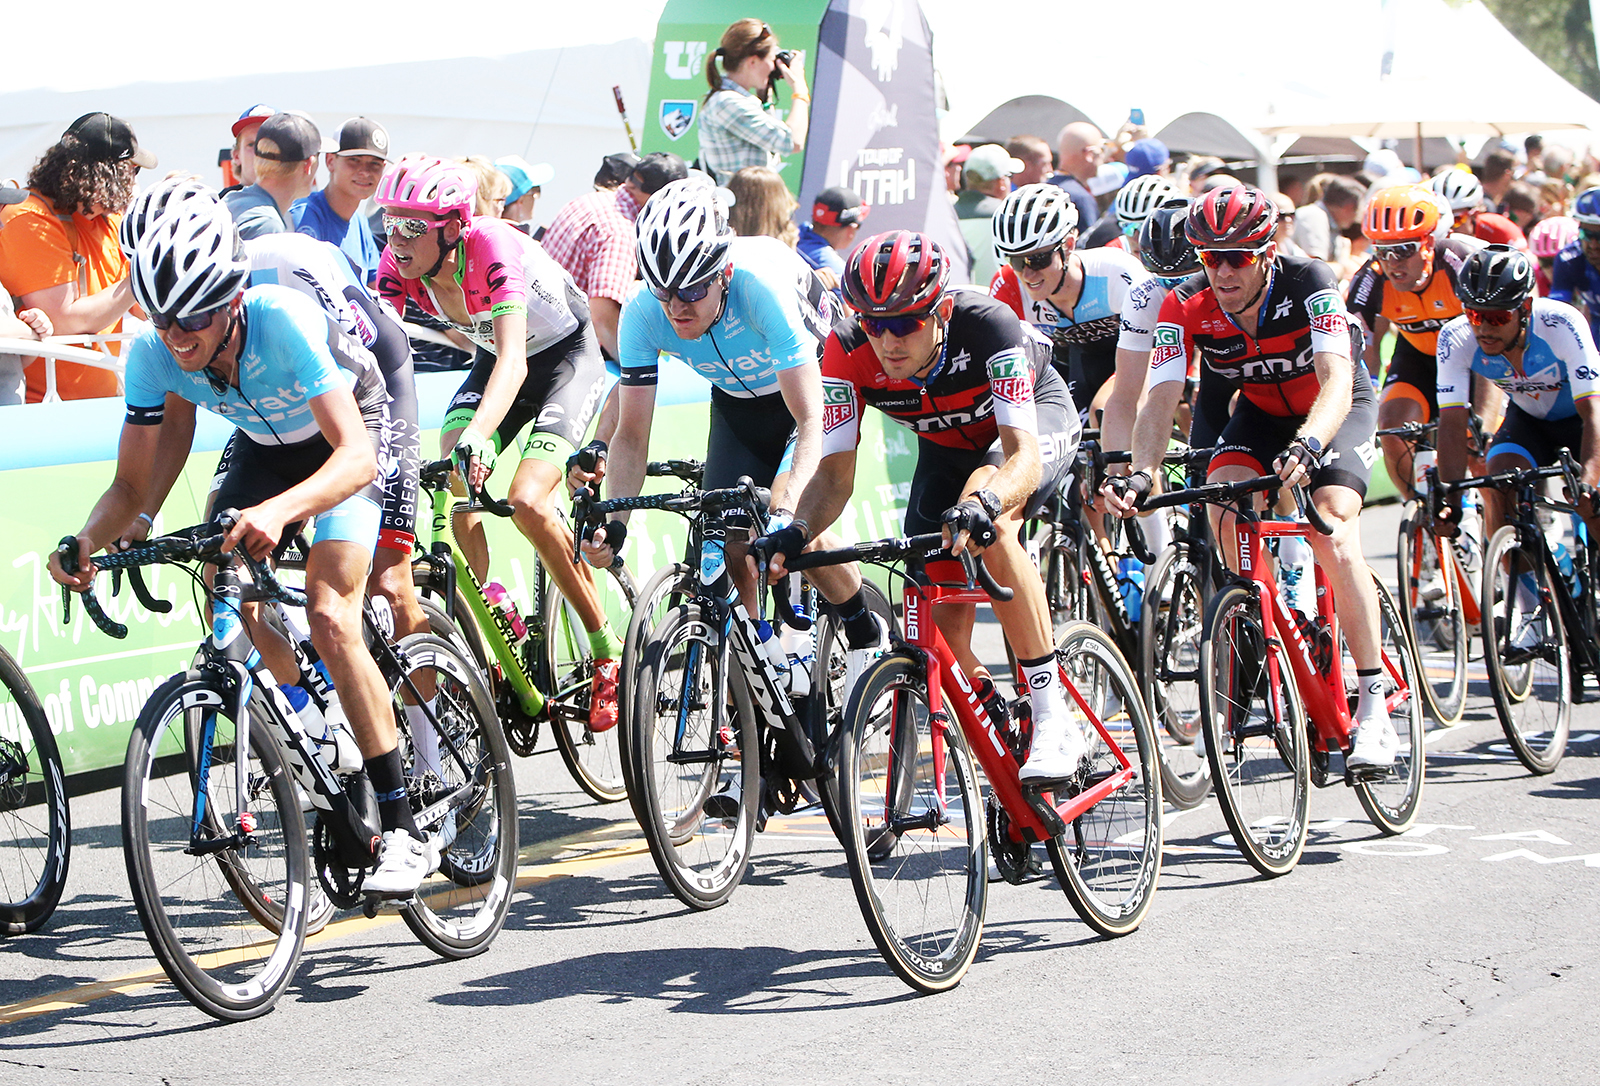 Stage 3. 2018 Tour of Utah Stage 3, August 8, 2018, Layton, Utah. Photo by Cathy Fegan-Kim, cottonsoxphotography.net